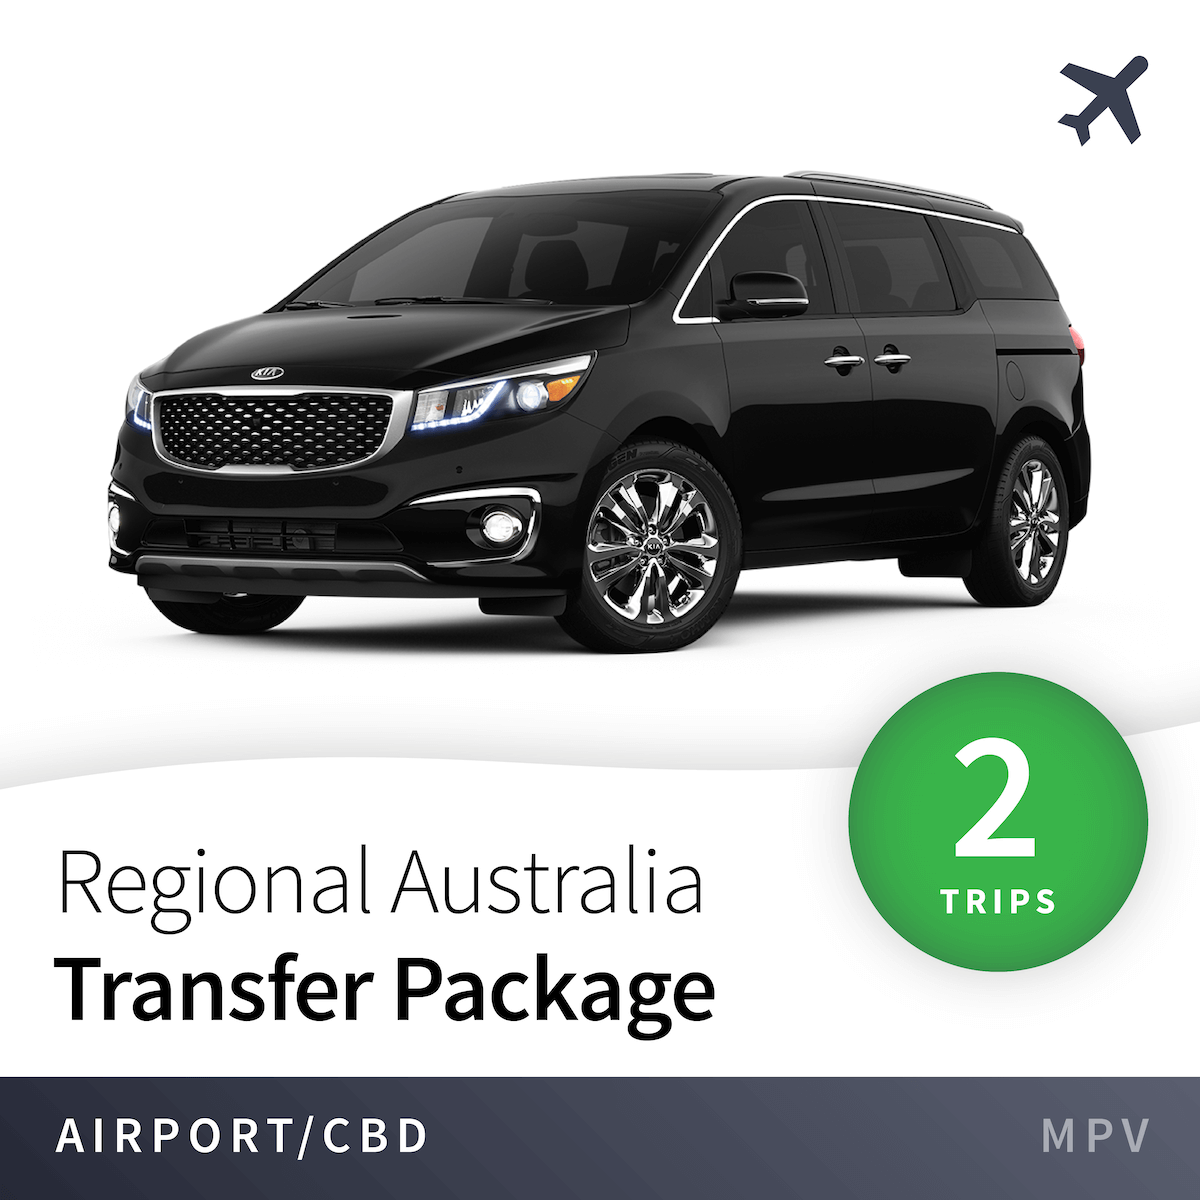 Regional Airport Transfer Package - MPV (2 Trips) 1